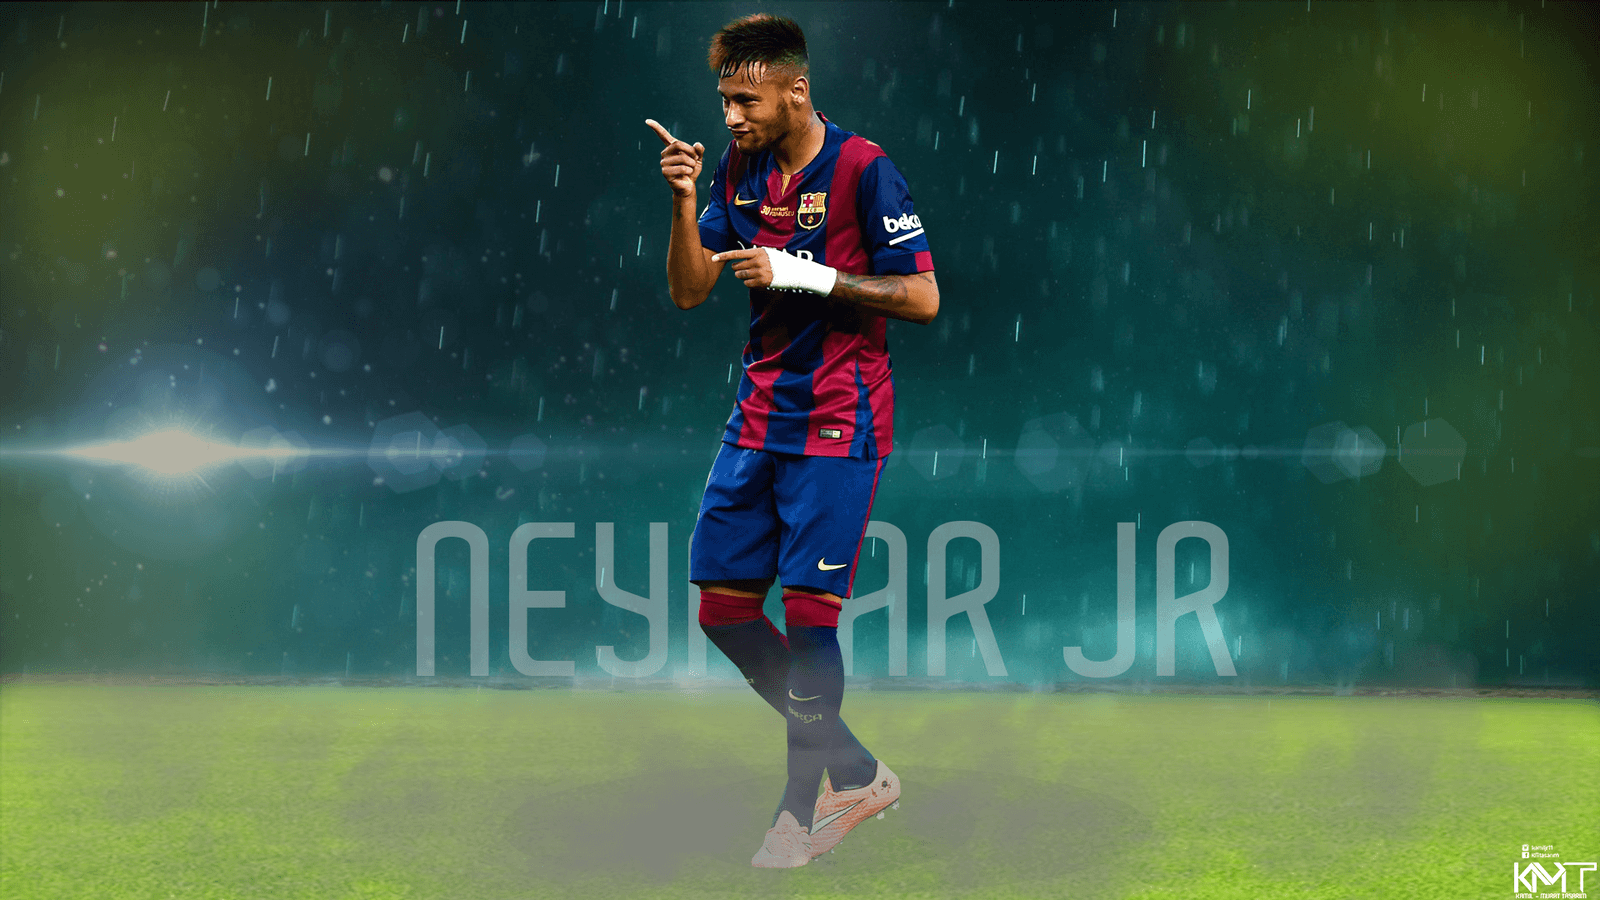 Neymar Jr Wallpaper HD - WallpaperSafari